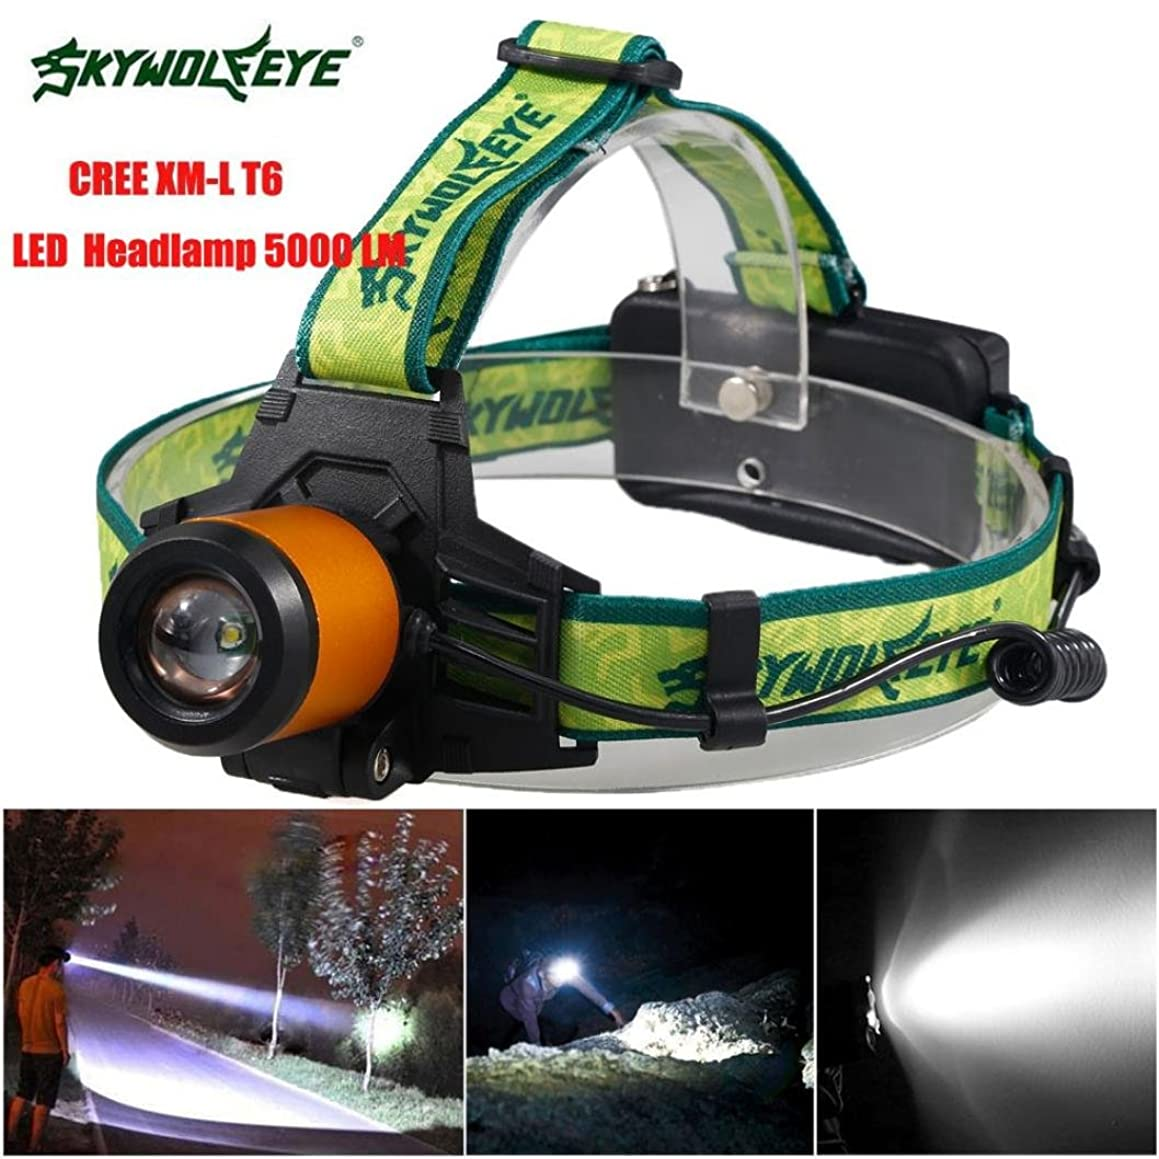 Sky Wolf Eye Headlamp ,Oksale? Waterproof 5000 LM 3 Mode Zoomable XML T6 LED Bicycle Head Light ,18650 Headlight Torch for Camping Hunting Running (Orange)